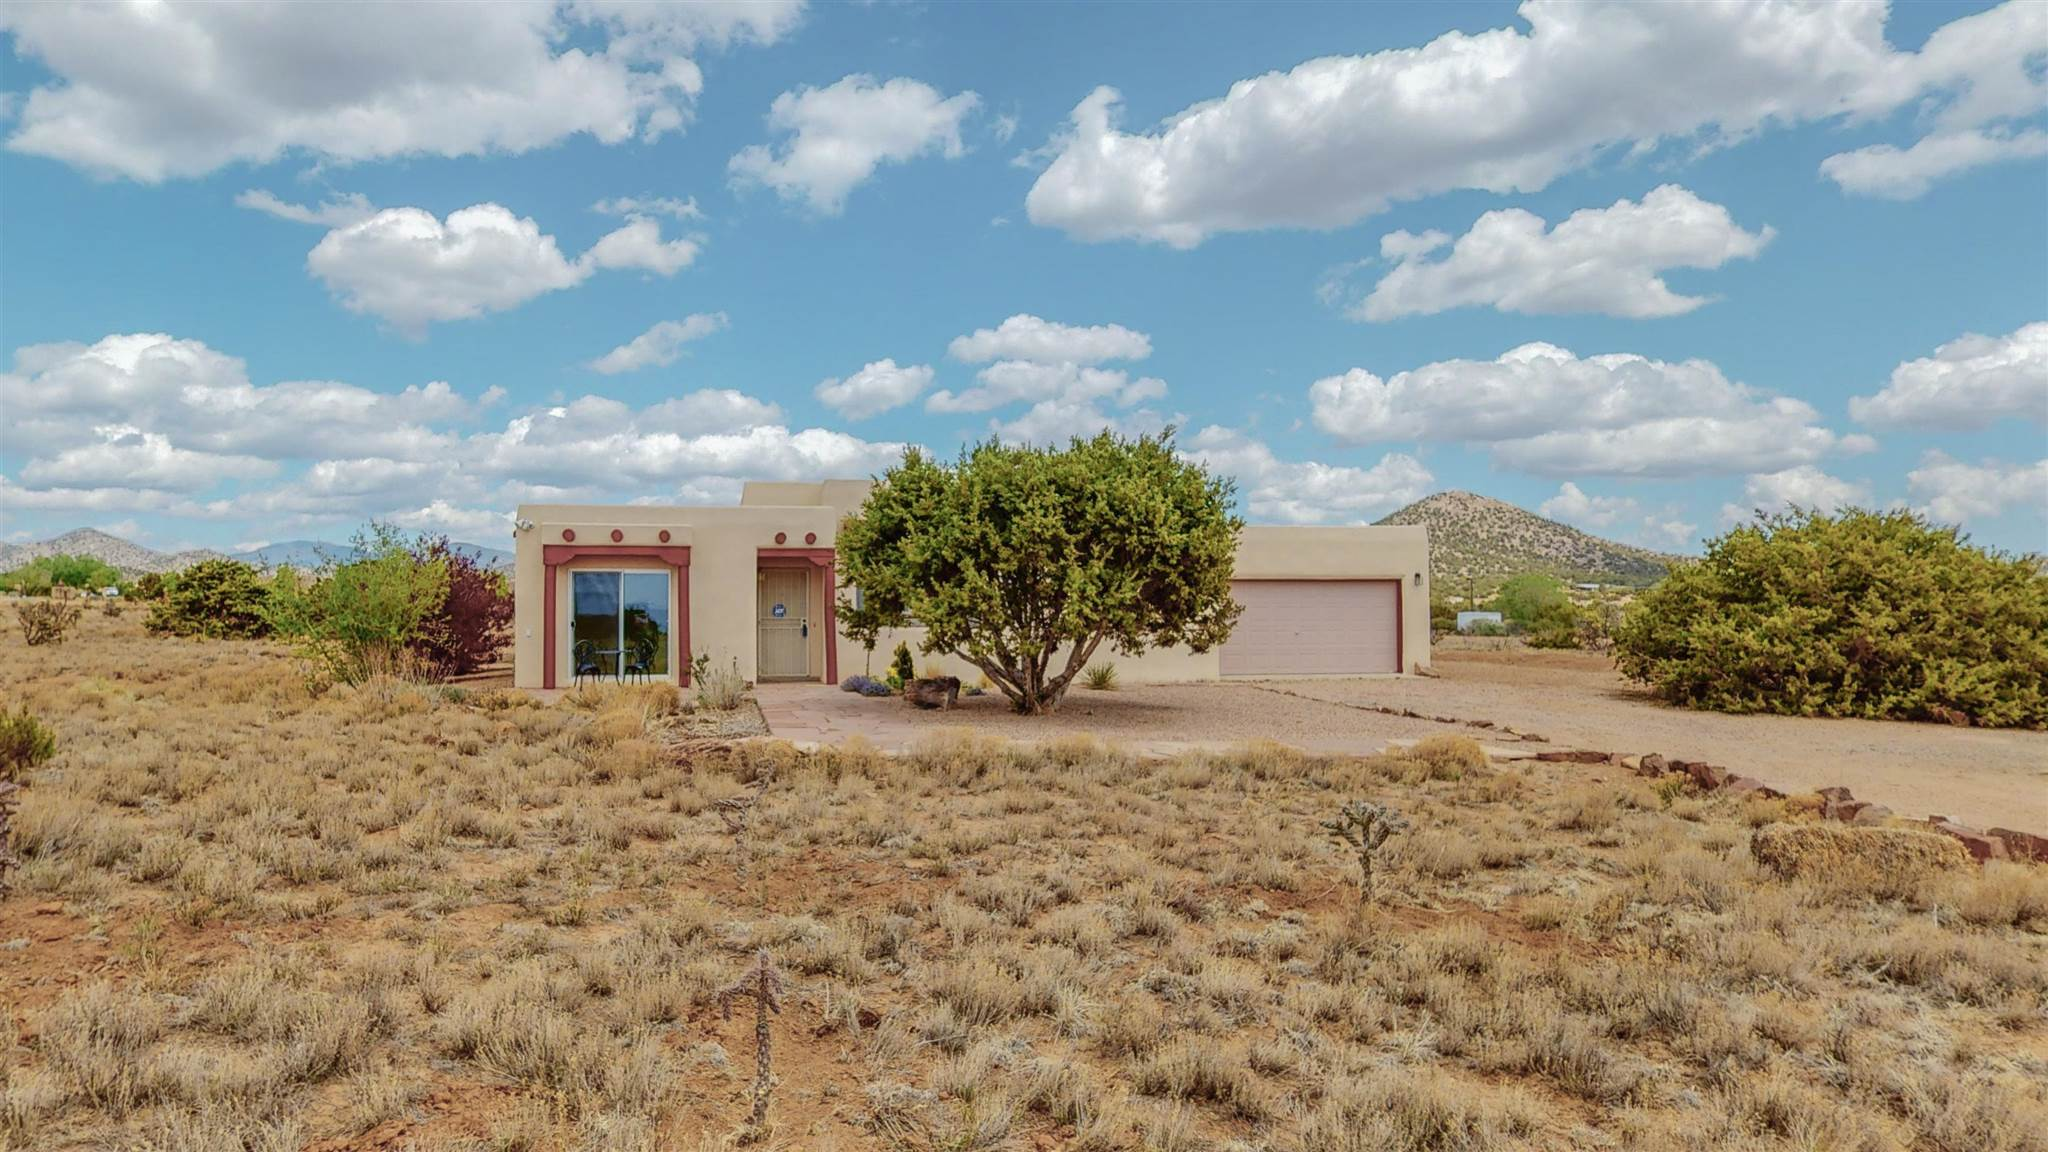 Welcome home! Enjoy the Sangre de Cristo foothills views in this excellent family home on over an acre. This home offers beams, three bedrooms, and two bathrooms, a gas fireplace in the living room, forced heating, and an evaporative cooler and a recent stucco and roof maintenance. Enjoy the outdoors from the spacious, fenced-in, graveled backyard, located a stone's throw from the conveniences of La Tienda and the Agora shopping centers.